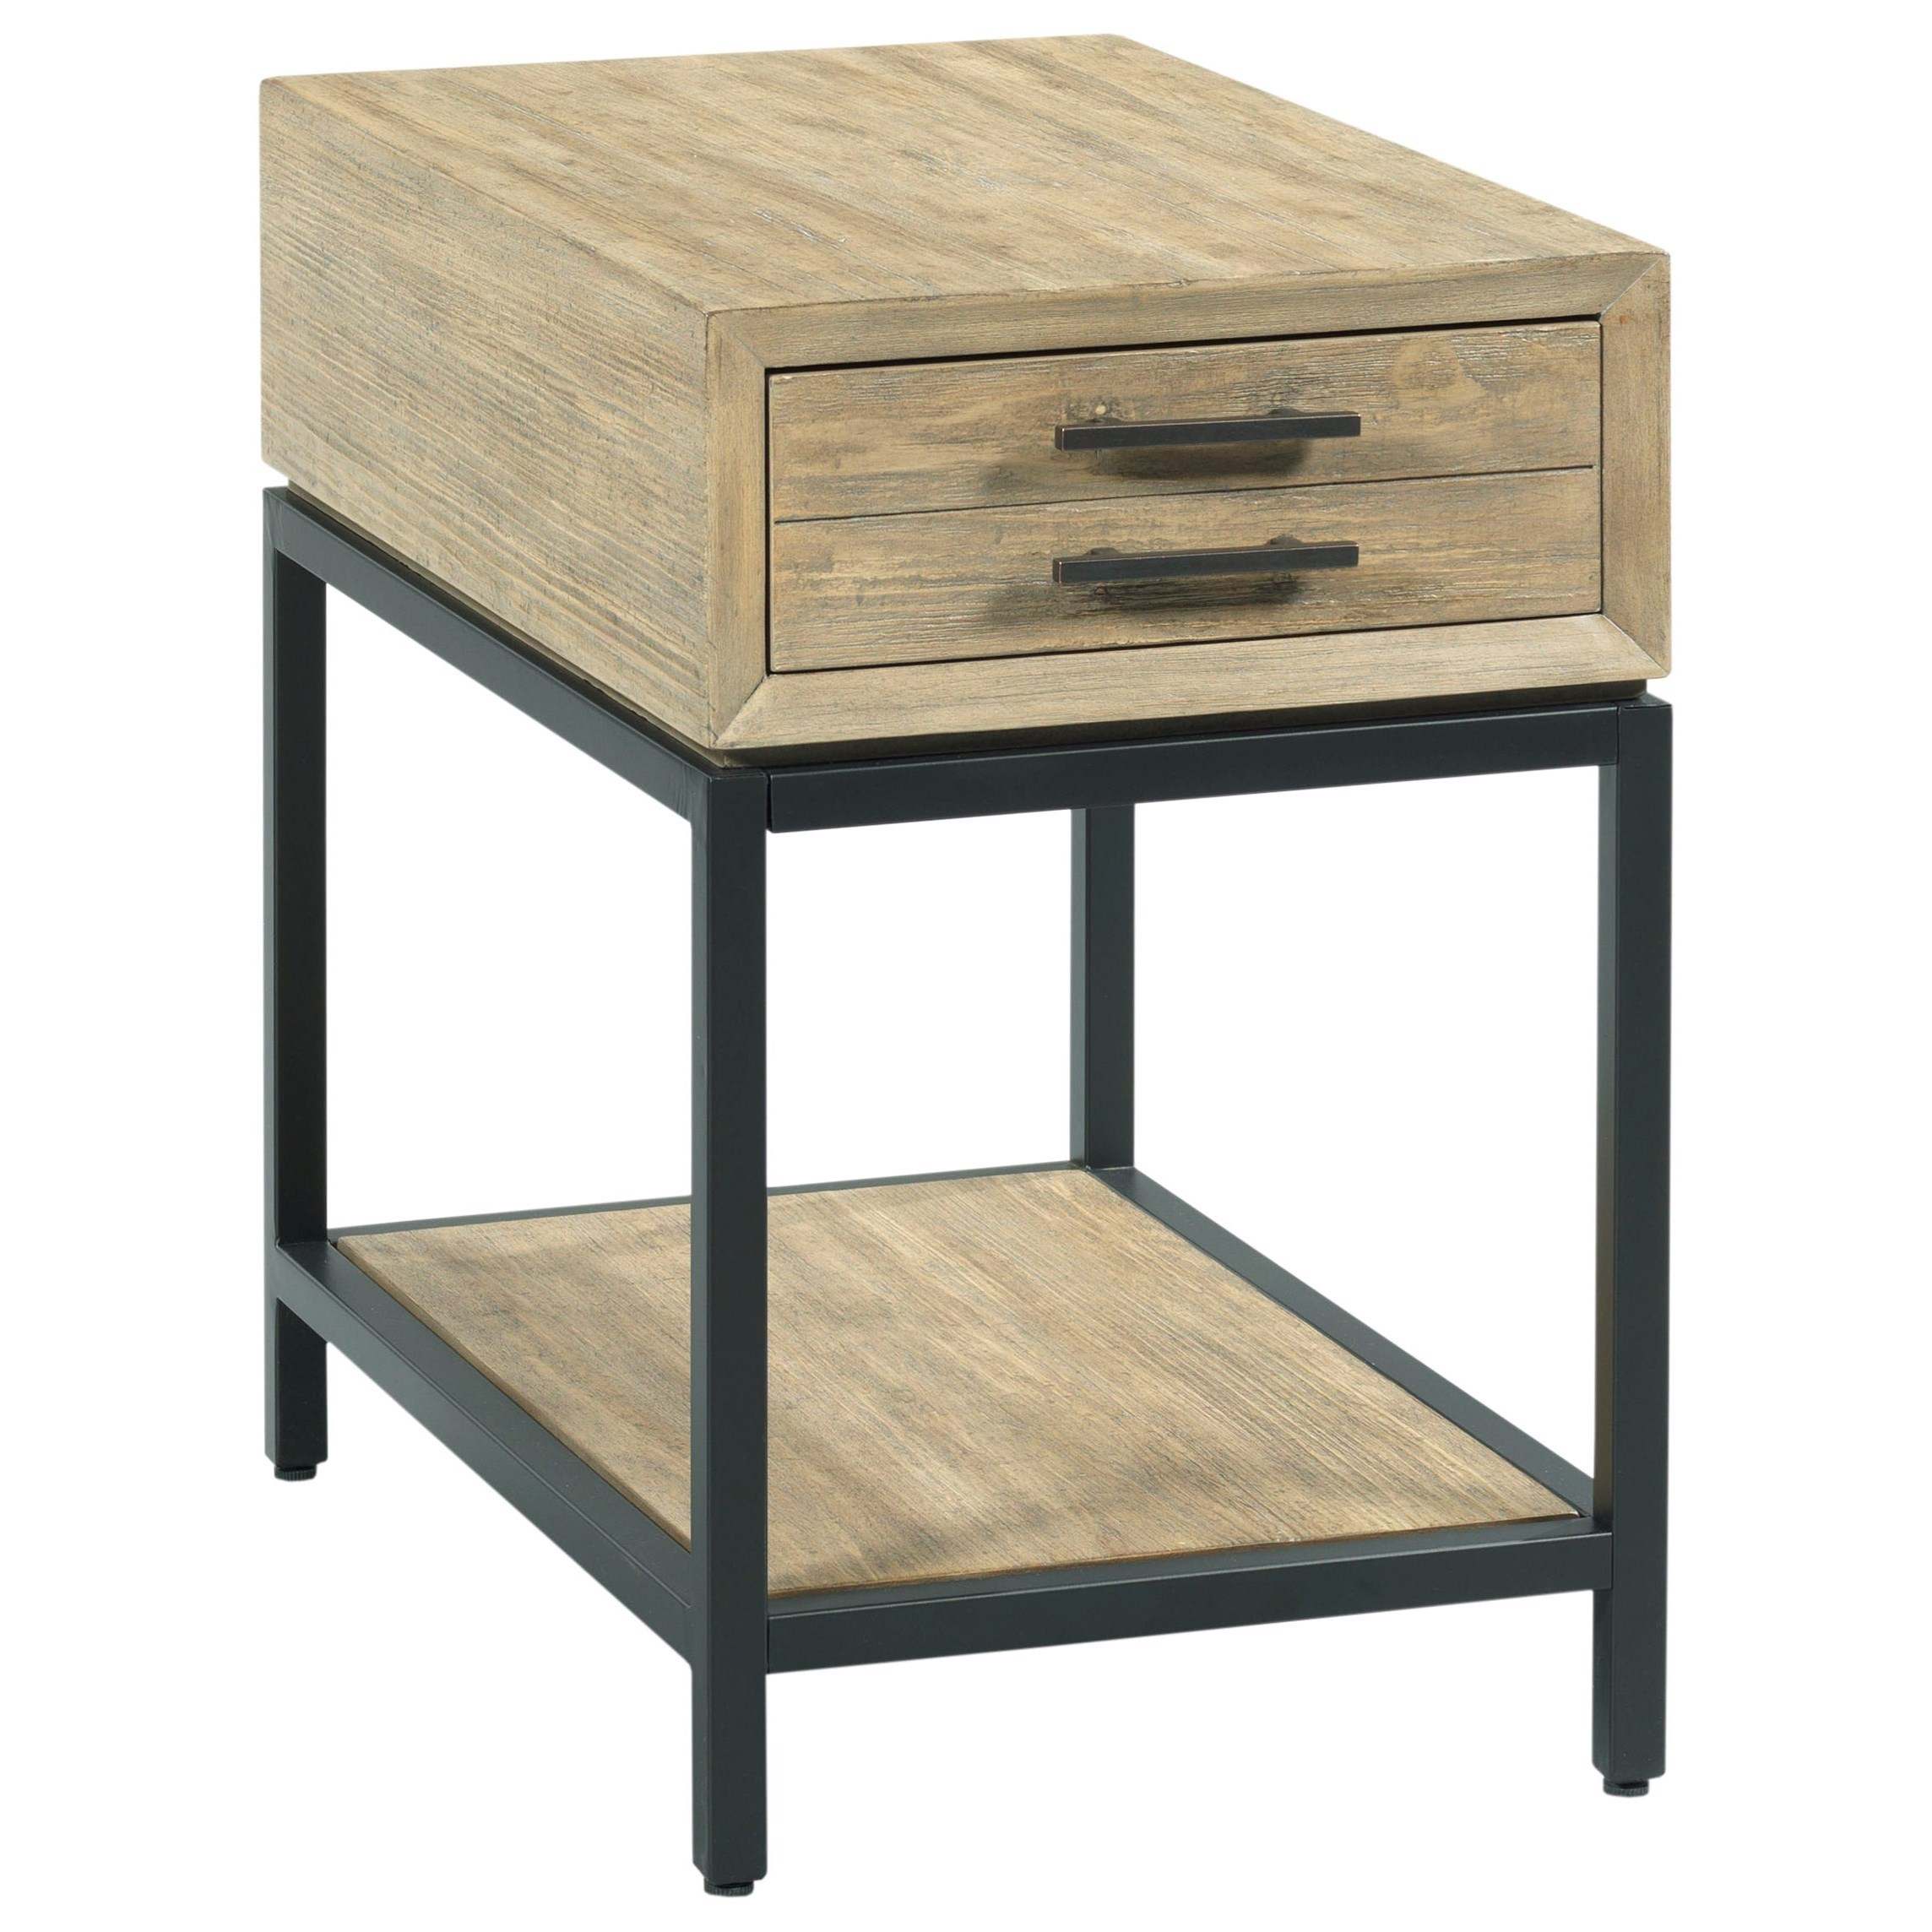 Jefferson Chairside Table by Hammary at Darvin Furniture